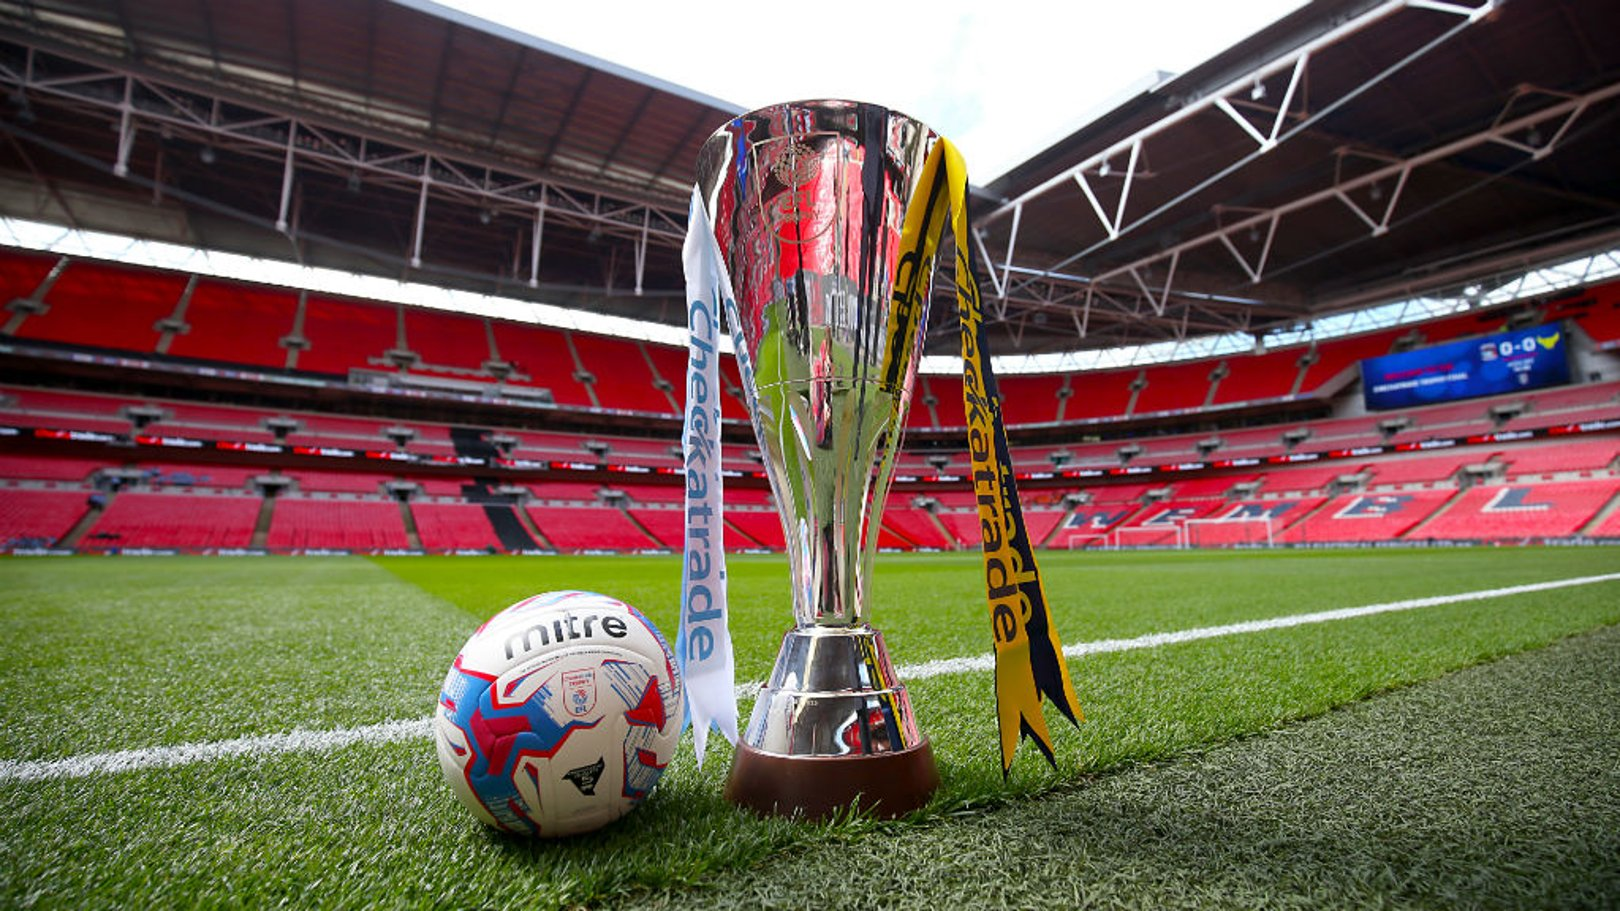 COMPETITION: Manchester City's Academy side will again play in the Checkatrade Trophy this season.